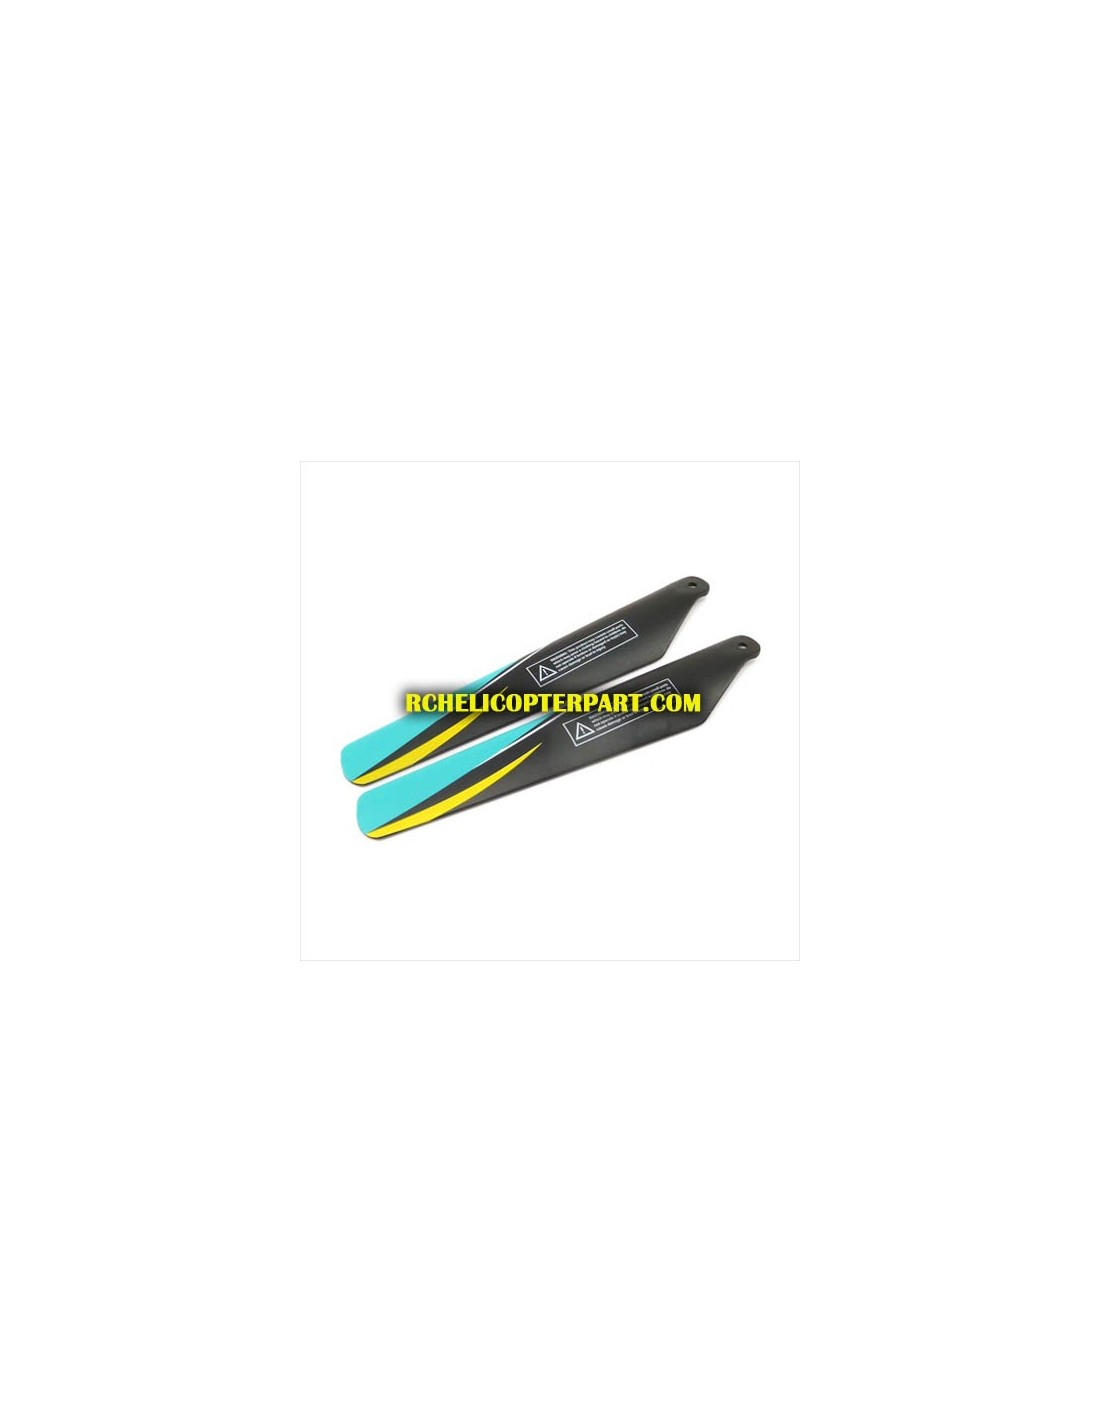 udi rc helicopter parts html with 612 104 10 Landing Gear Parts For Sky Rover Yw857104 Dark Stealth Helicopter on 409 123 01 Main Blade Parts For Sky Rover Yw857123 Swift Helicopter as well New Brushless Motor System Mjx Rc F45 F645 Rc Helicopter Parts P 2097 as well 946 Fx071c 21 Fx071c Parts 4ch Rc Helicopter Parts Receiver Board 0110500712119 in addition Mjx F45 F645 Remote Control Transmitter Of Version 2 P 4905 also 476 123 23 Cabin Parts For Sky Rover Swift Rc Helicopter.